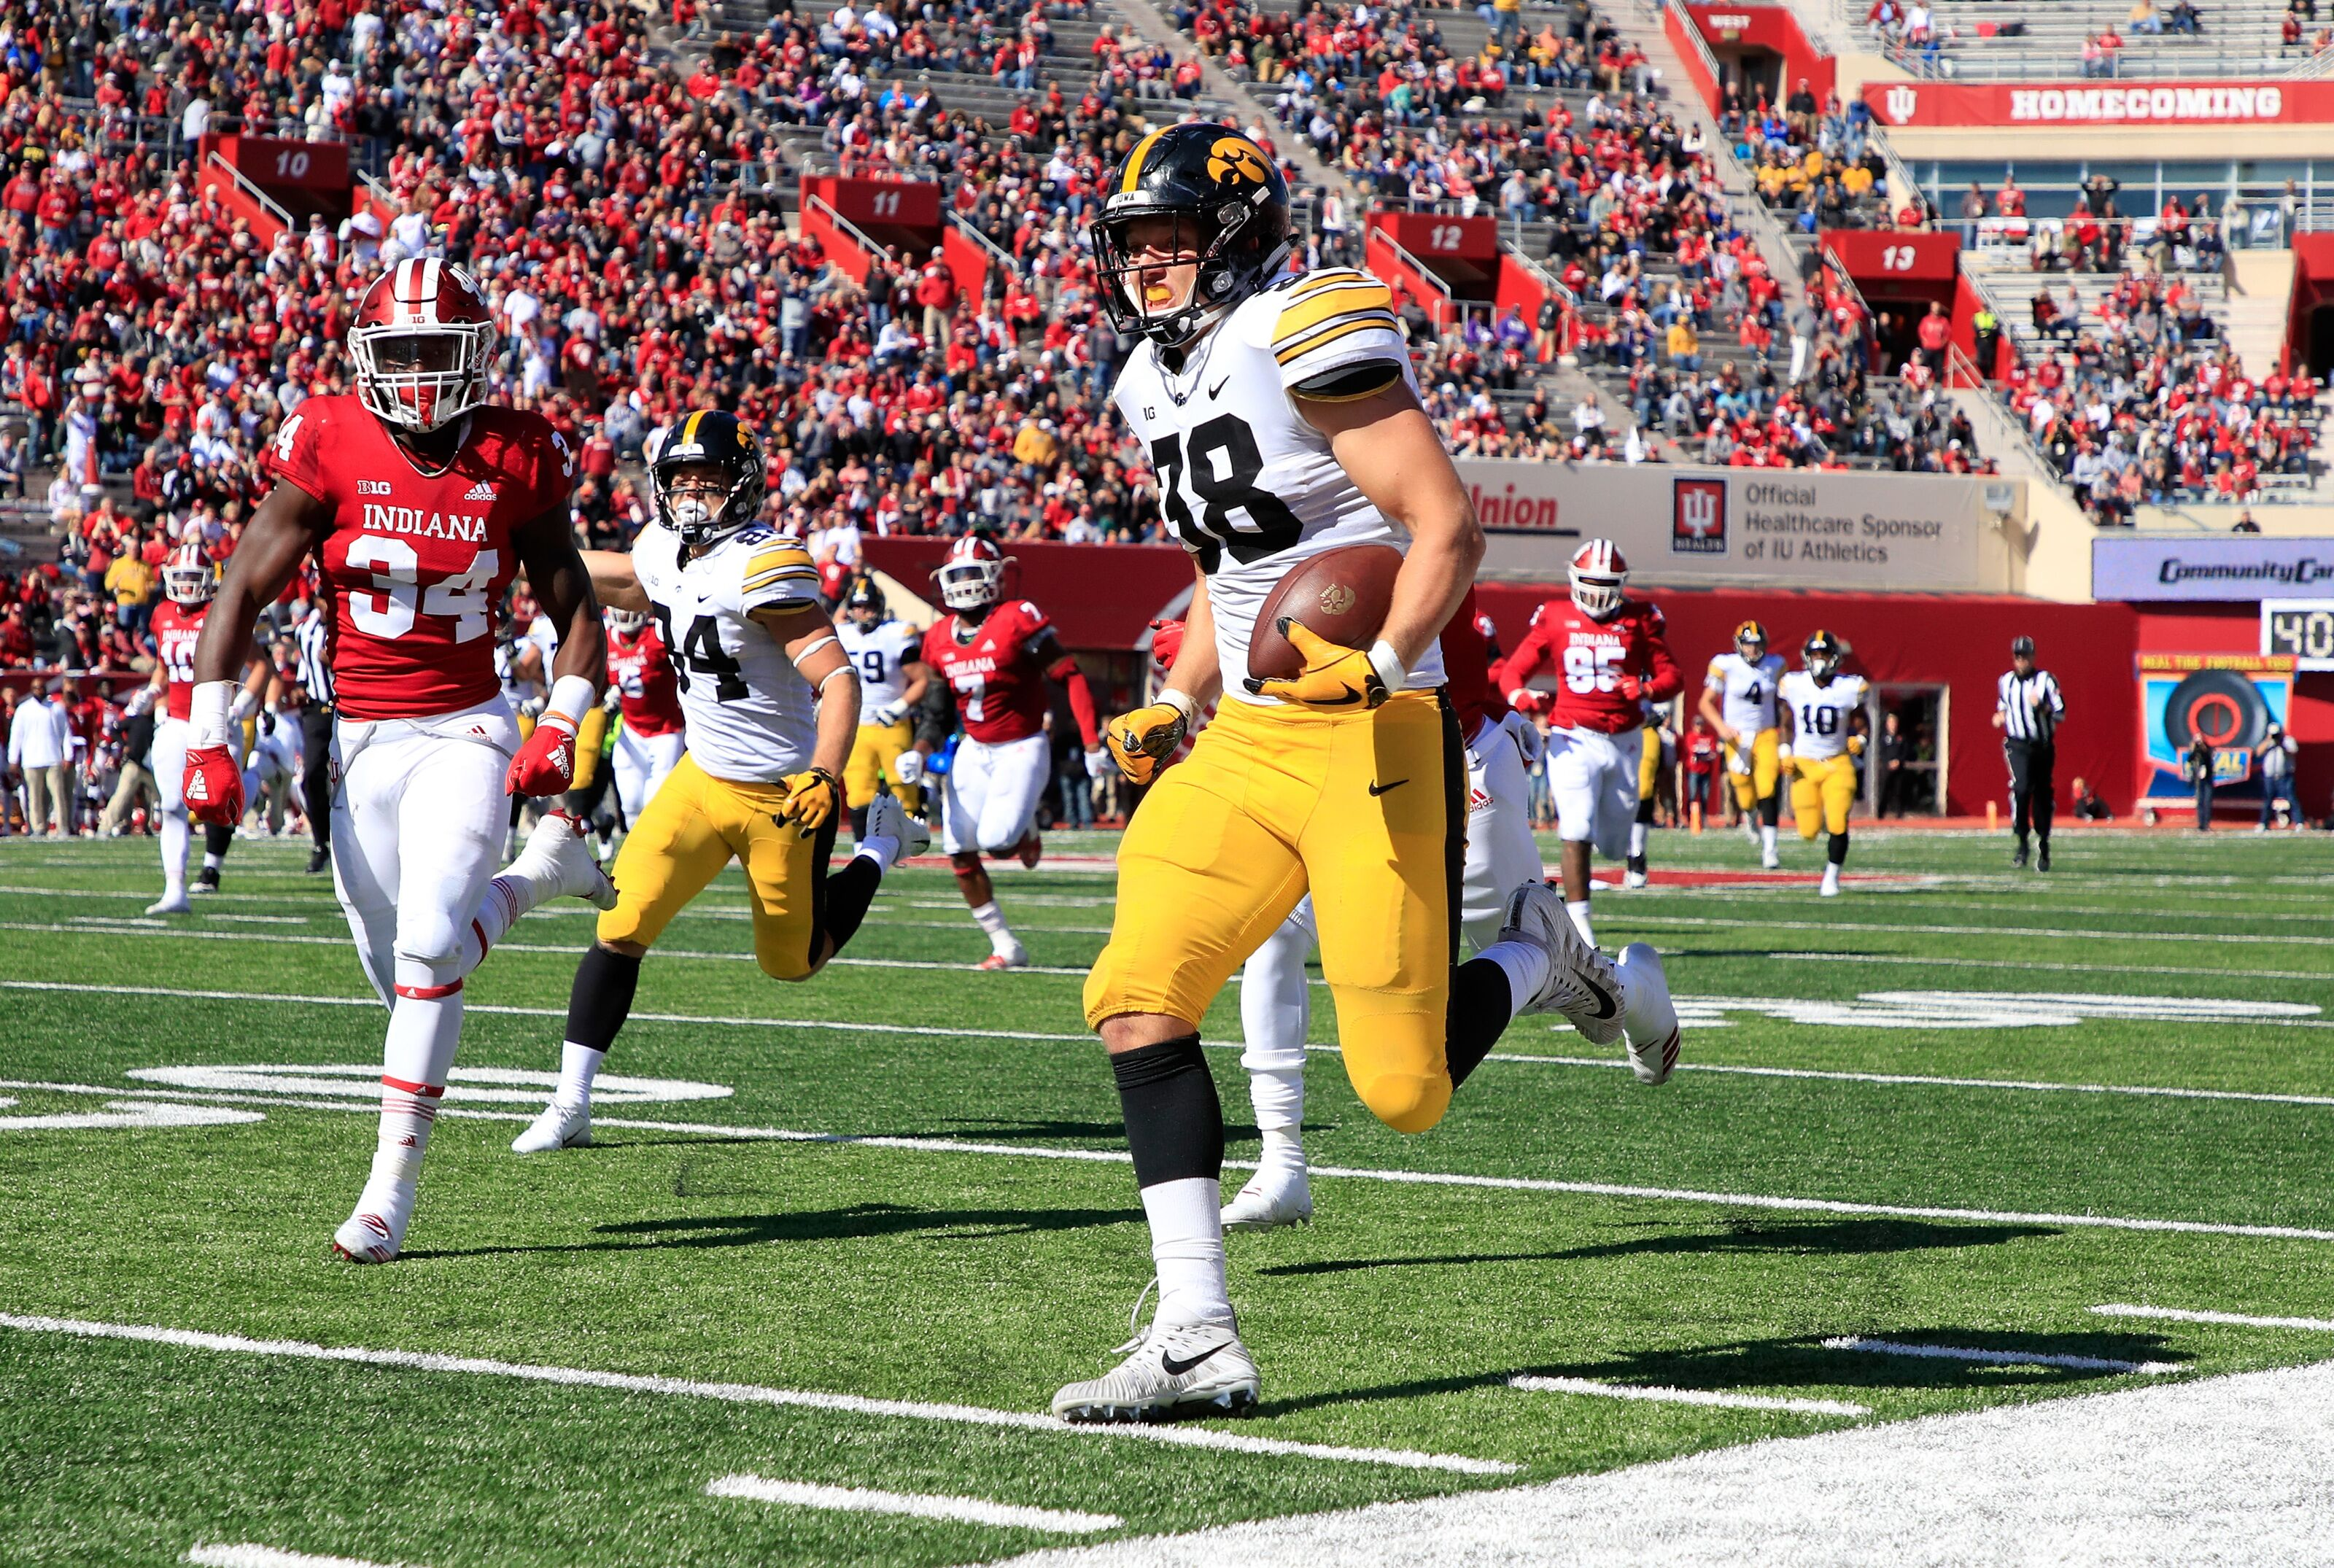 Iowa Football Three Hawkeyes Collect Game Balls In Win Over Indiana